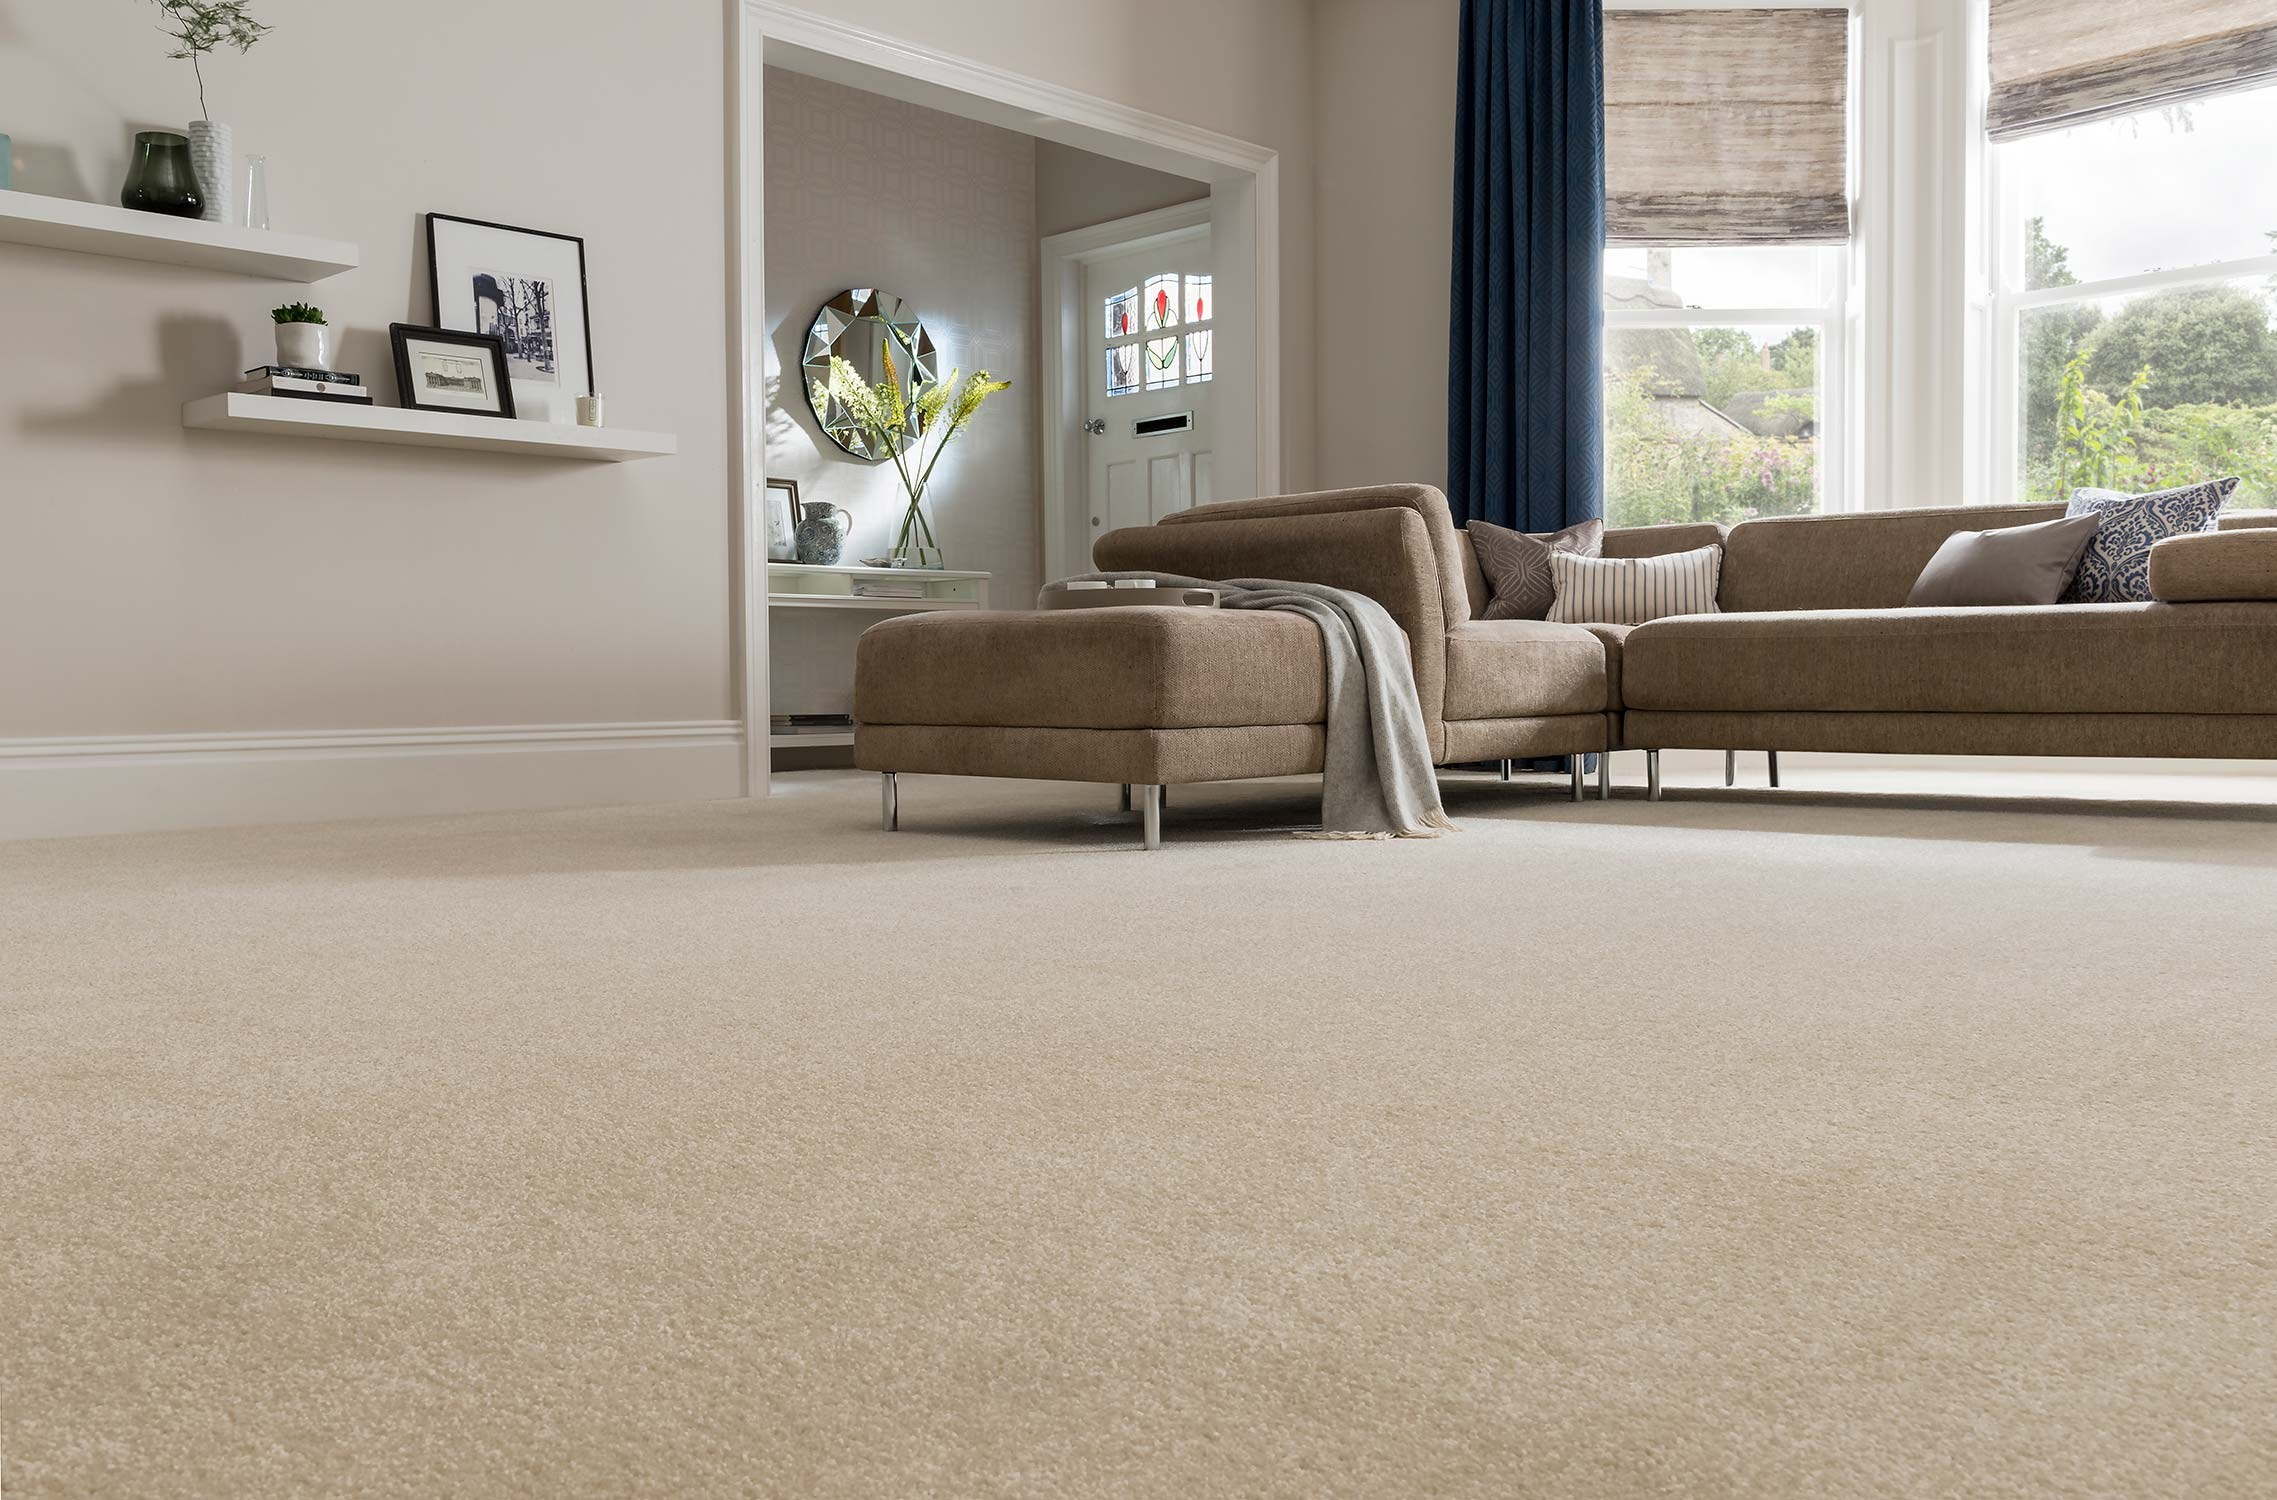 Carpet Cleaning Vaudreuil Dorion Saint Lazare Carpet